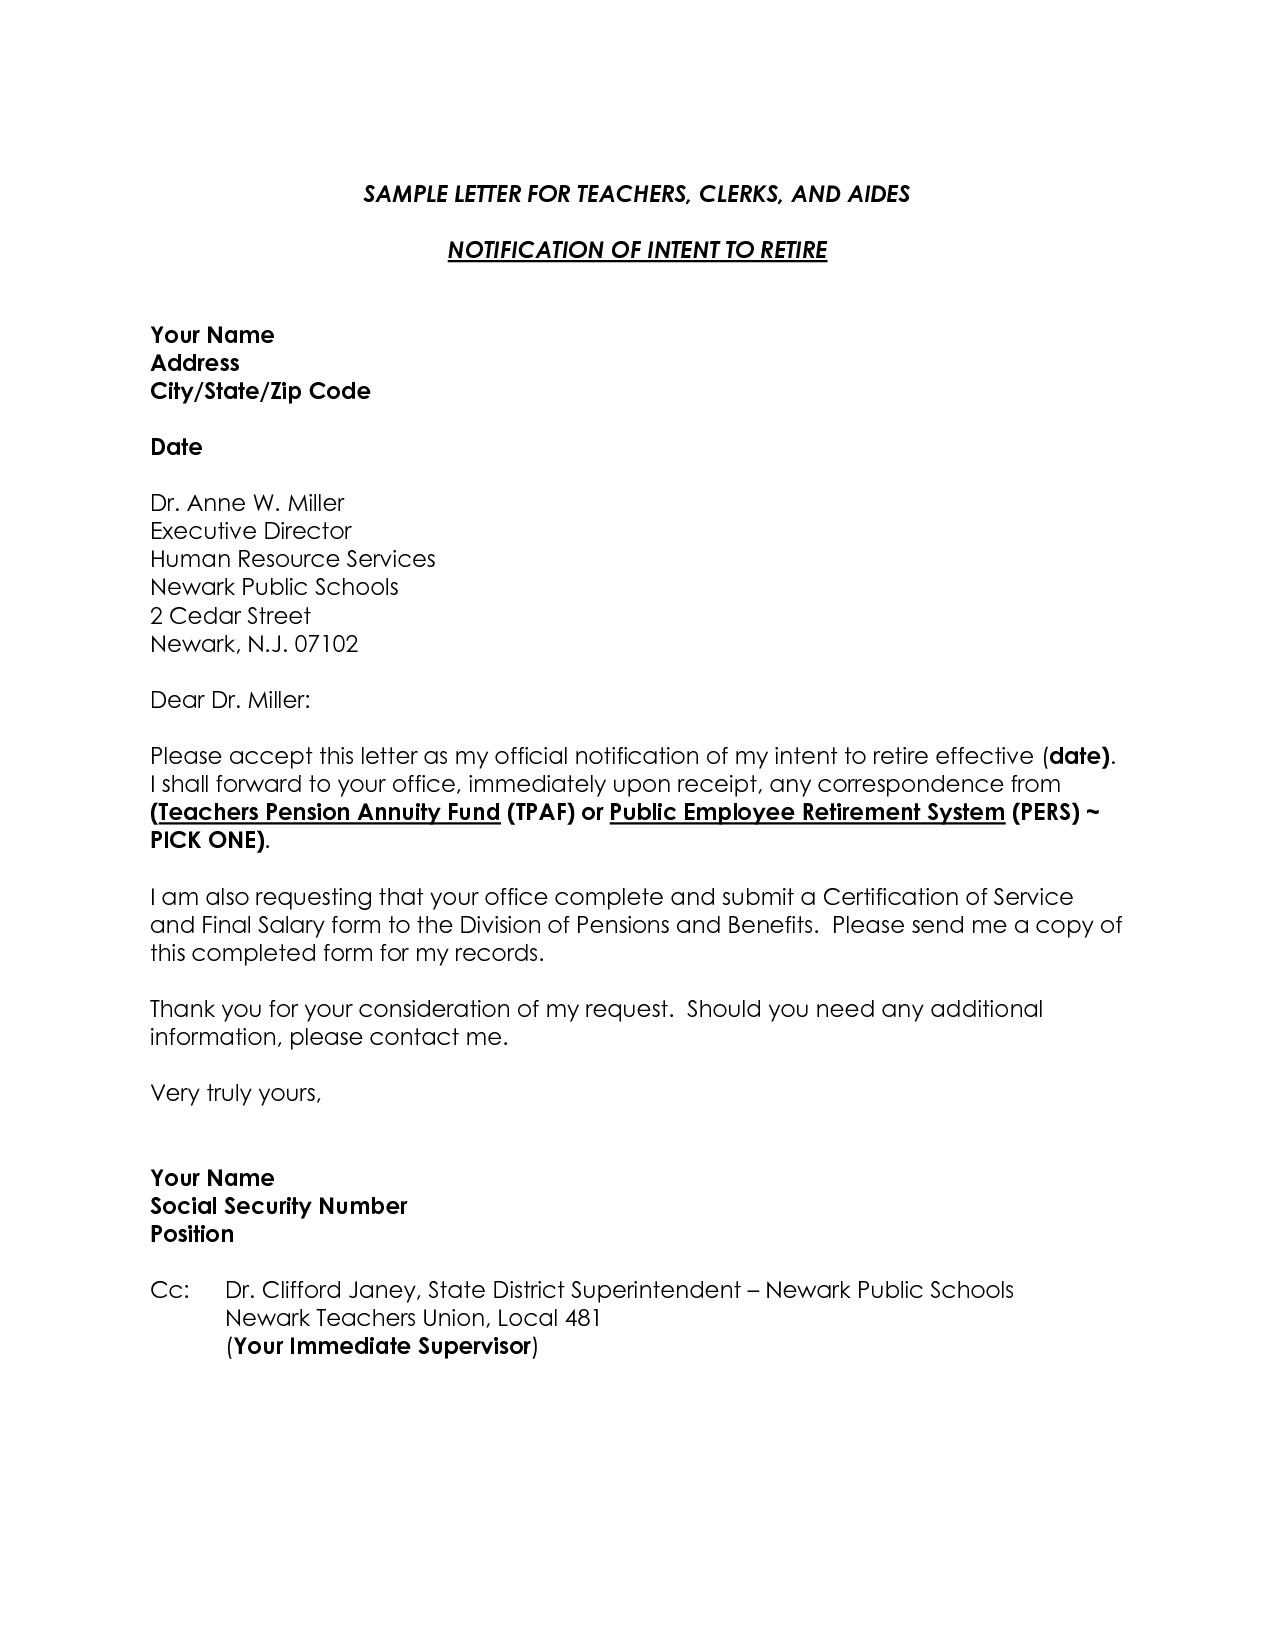 Retirement Resignation Letter Template Free - Sample Resignation Letter Early Retirement Examples Letters Due